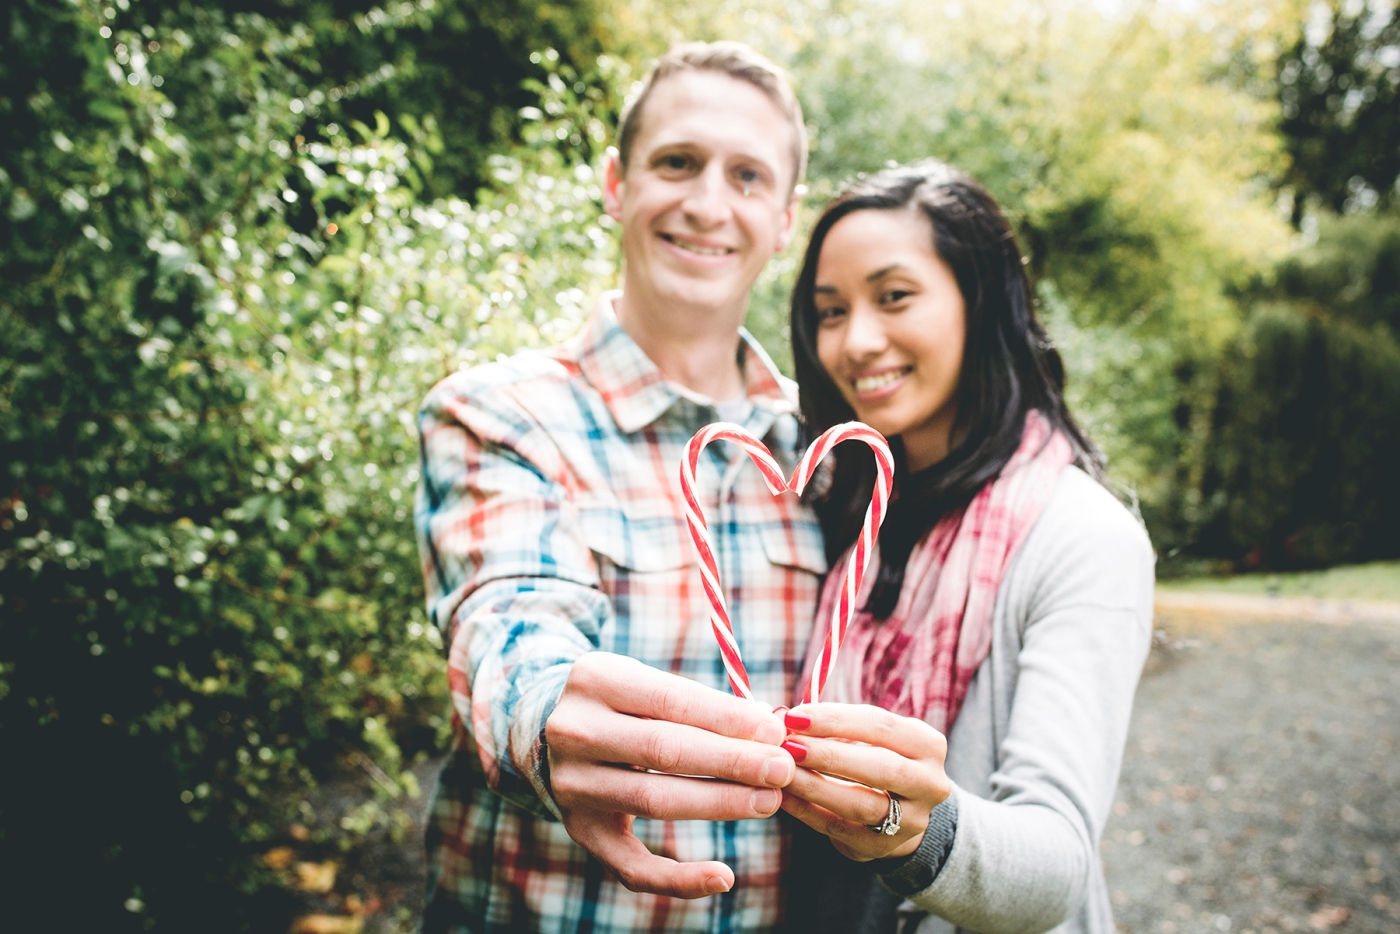 jane-speleers-photography-ju-bri-holiday-october-bellevue-botanical-garden-engagement-2016_dsc_5829